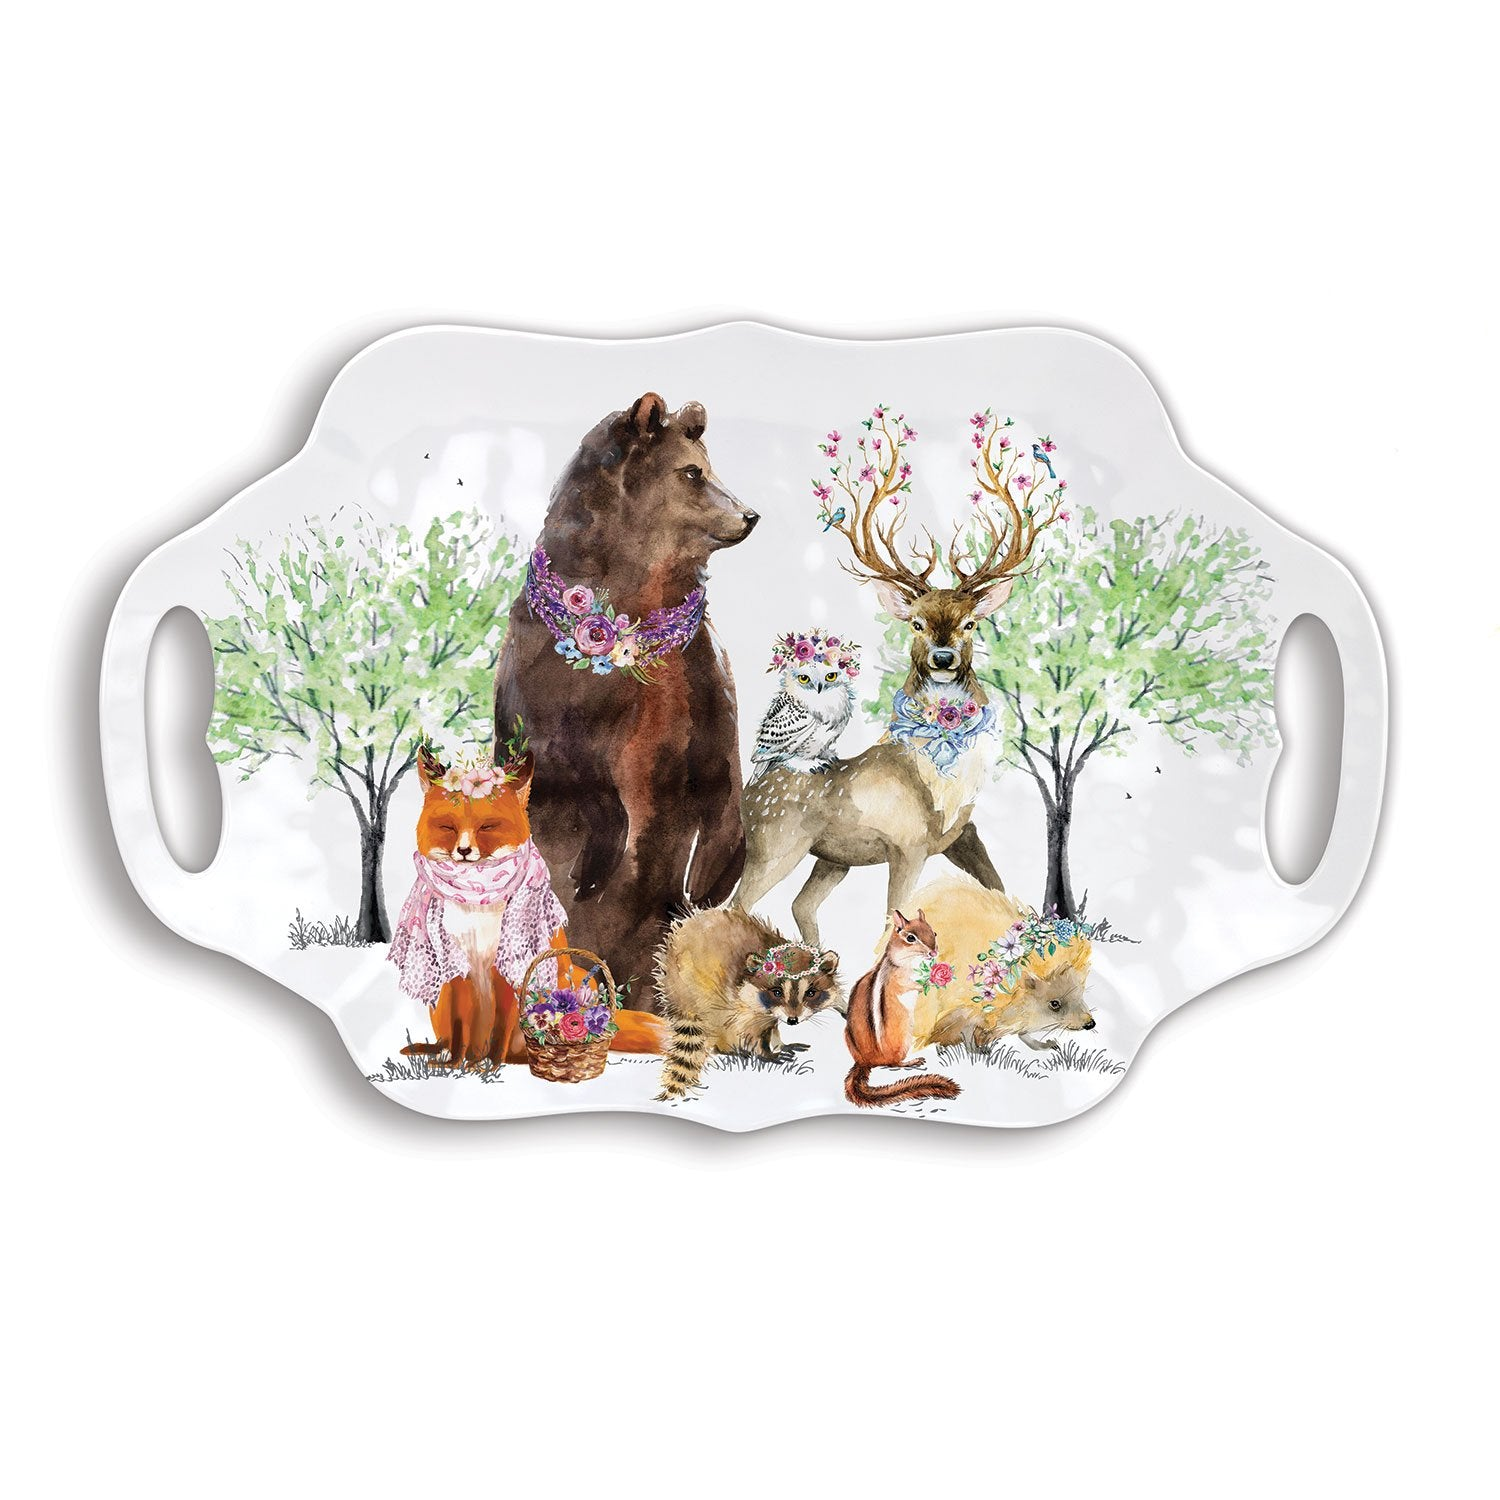 Garden Party Melamine Serveware Serving Tray